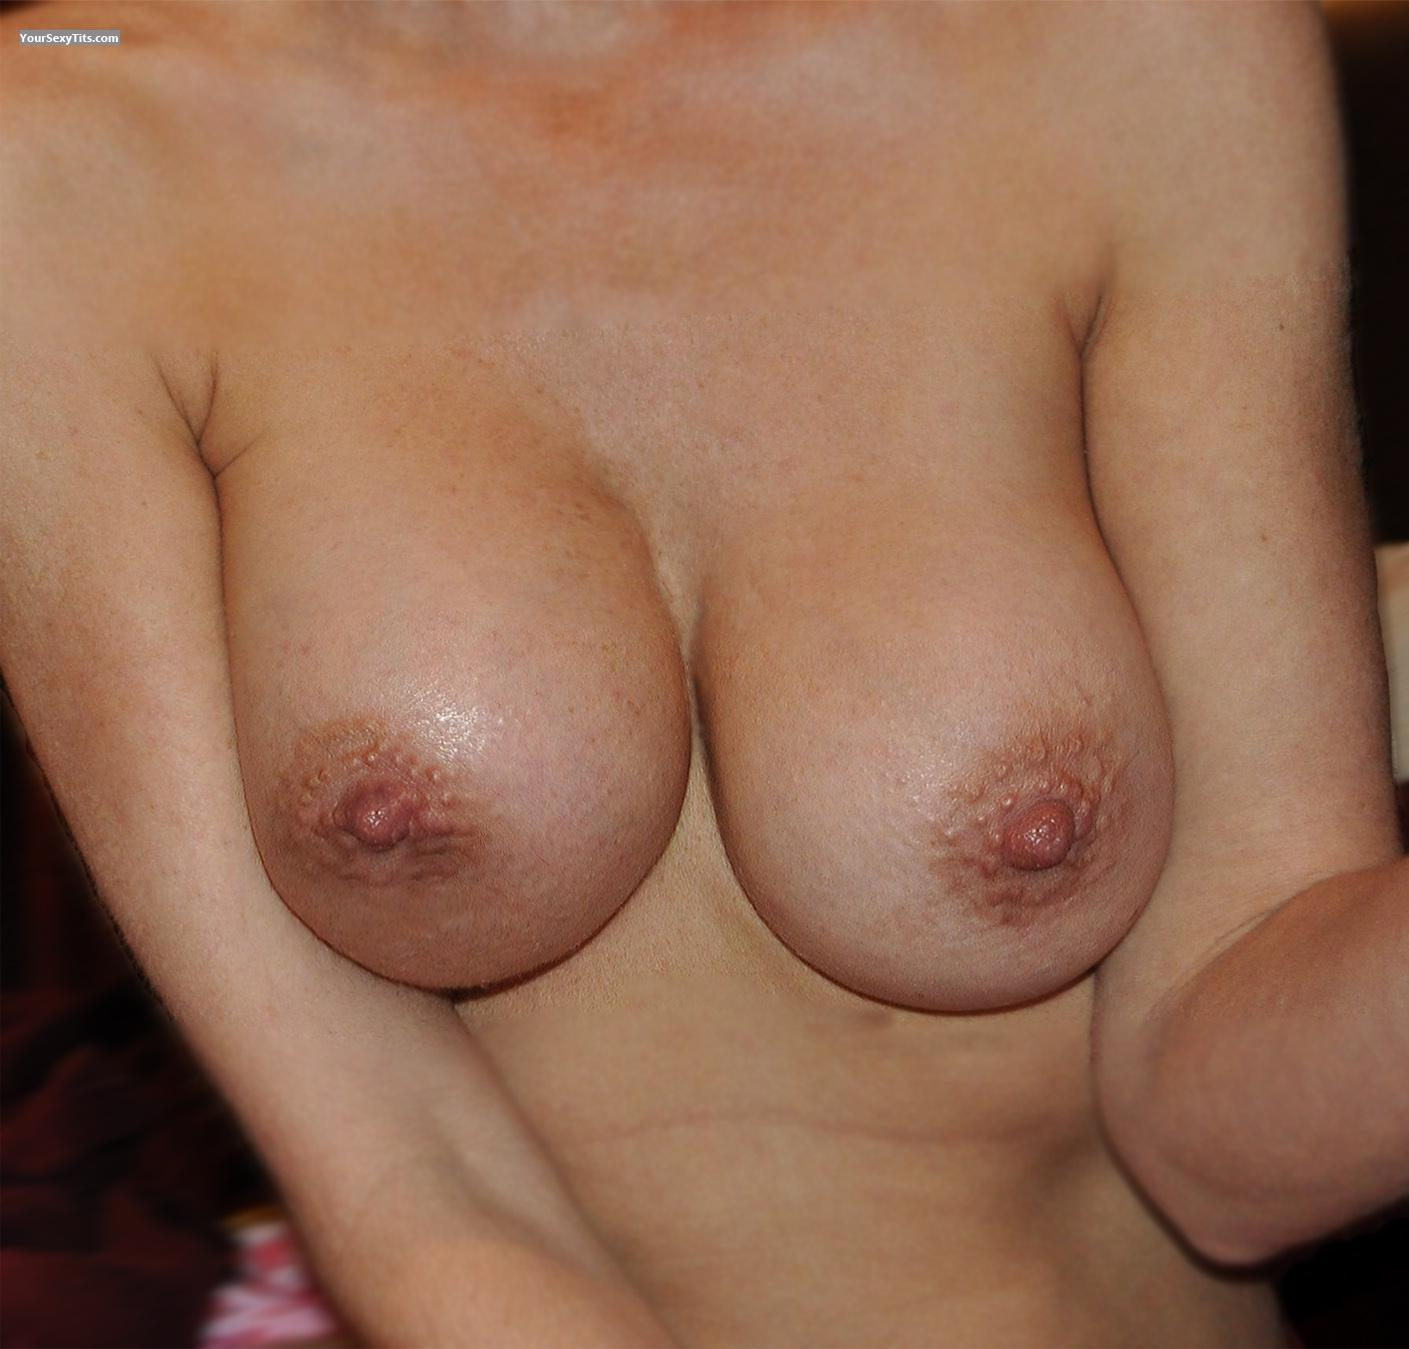 Medium Tits Of My Wife Lonely